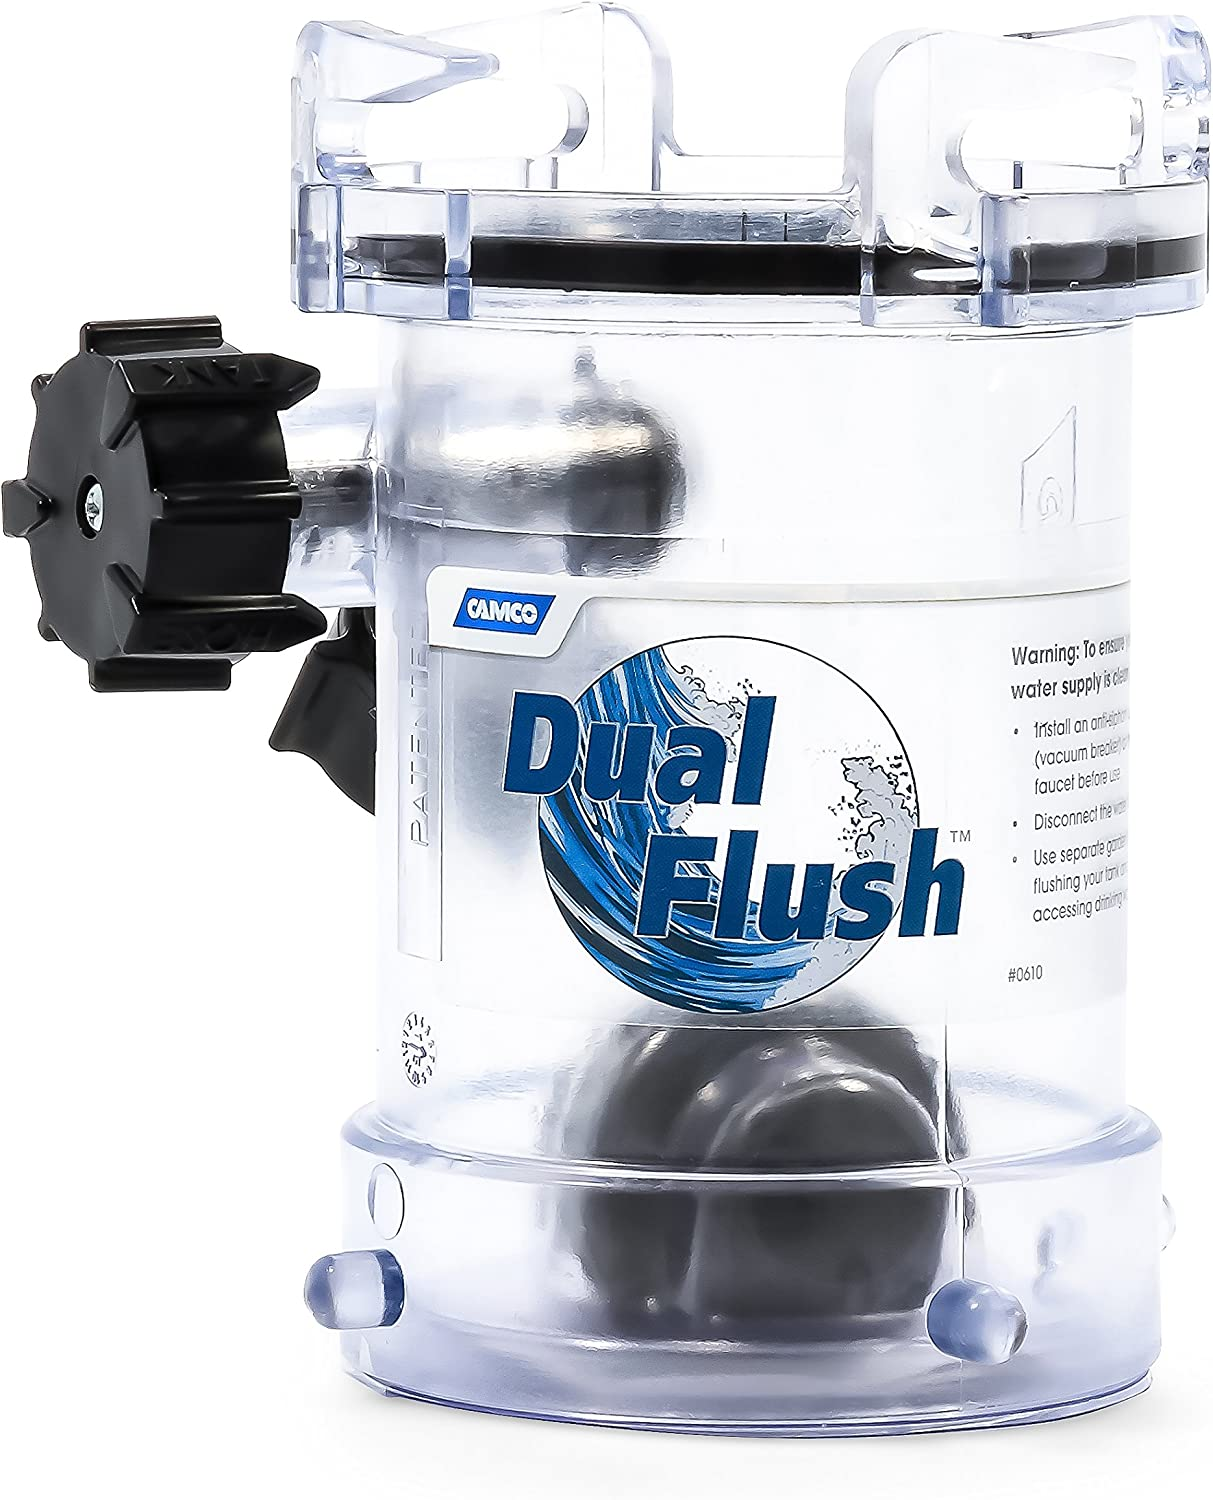 Amazon Com Camco Rv Dual Flush Rv Holding Tank Rinser Cleans And Removes Clogs From Sewer Lines With Two Way Jet Cleaning Action Helps Reduce Odors In Holding Tanks And Sewer Hoses